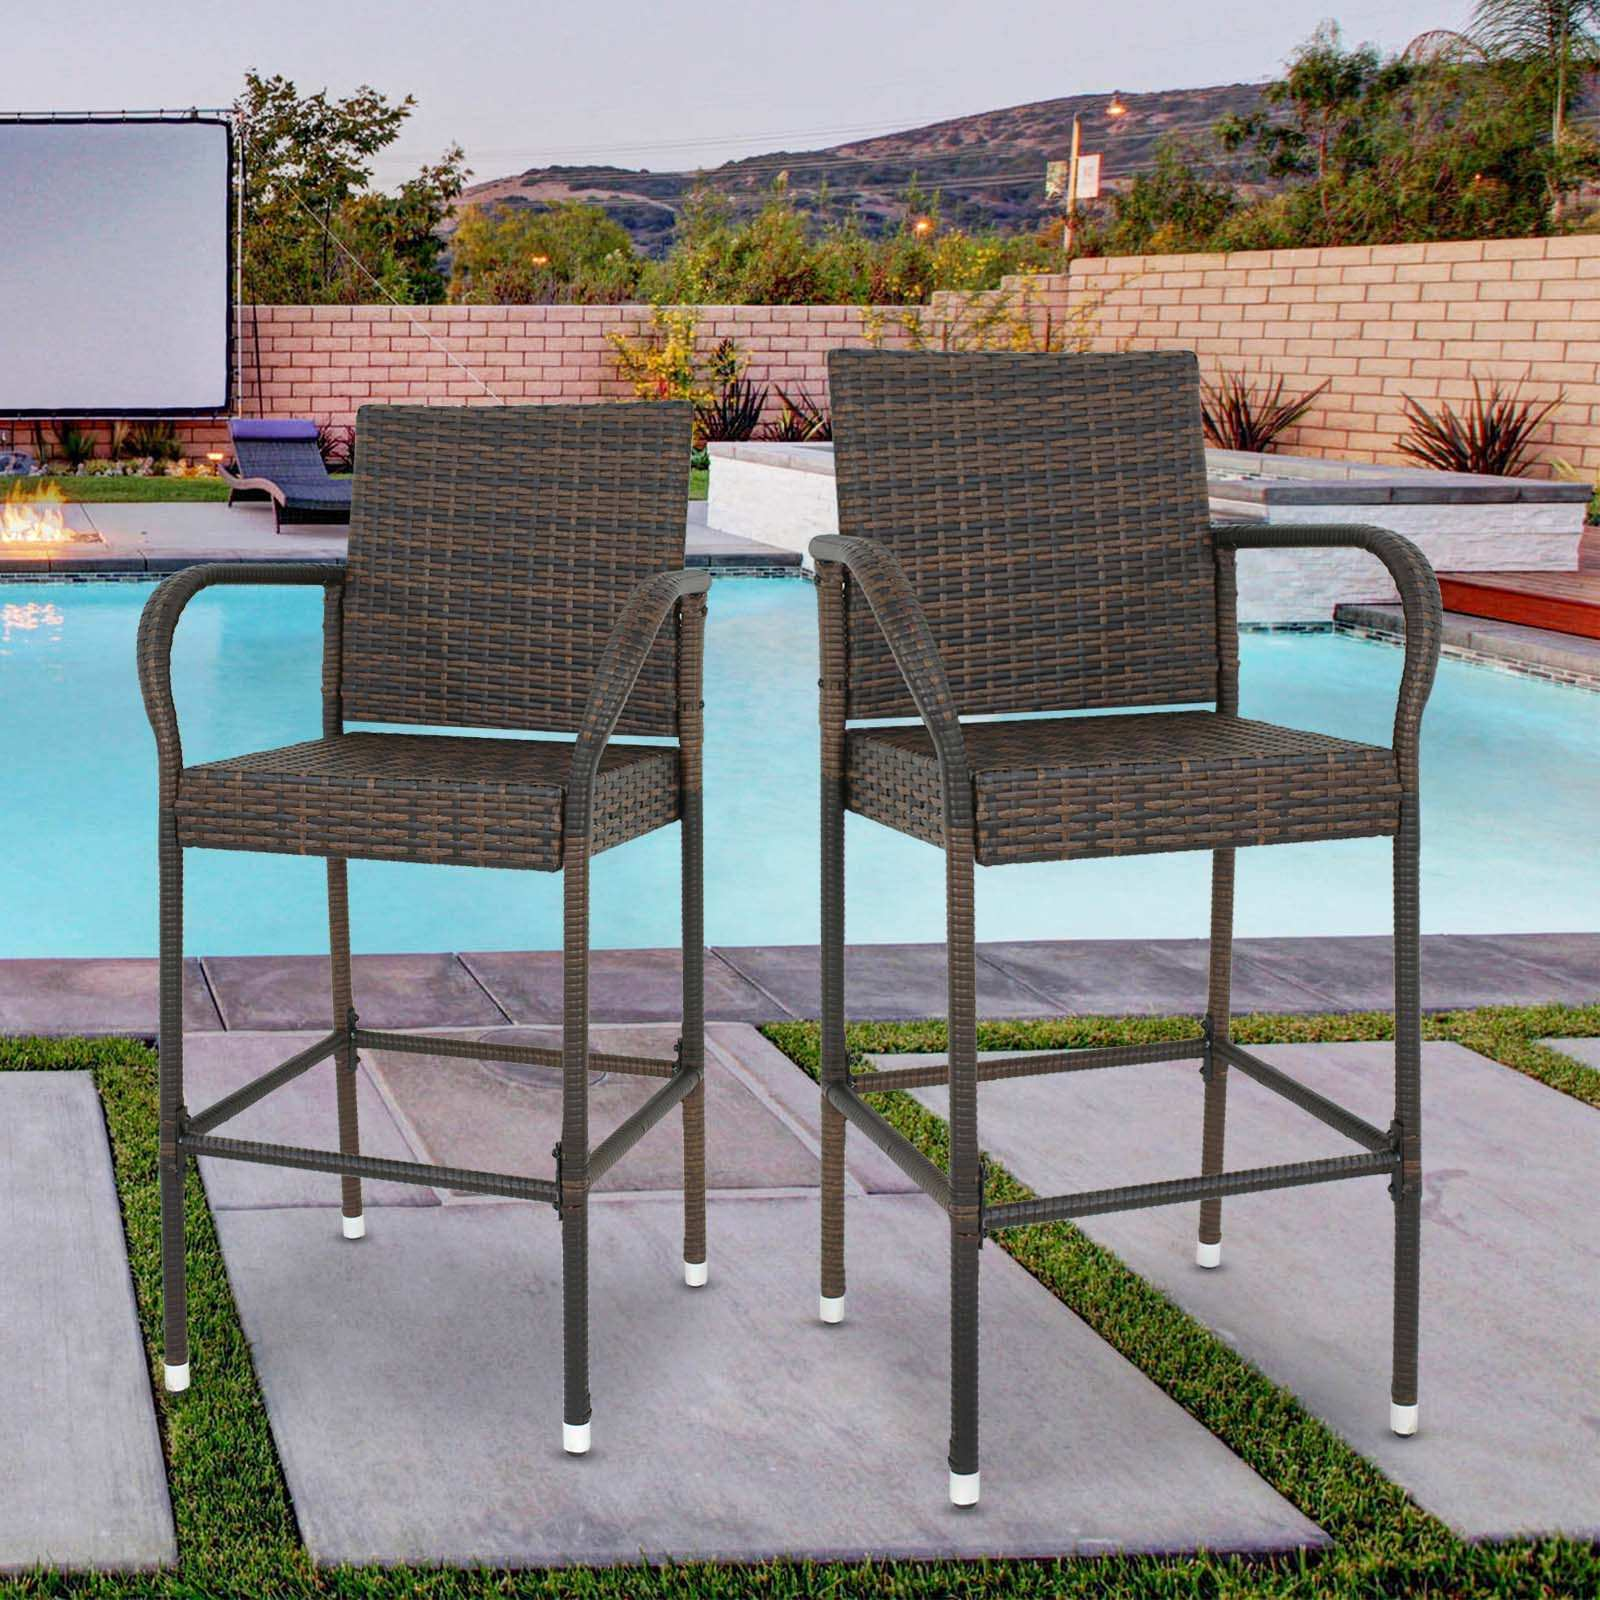 Gentil Zeny 2 Pack Rattan Wicker Bar Stool Outdoor Backyard Chair Patio Furniture  W/ Armrest